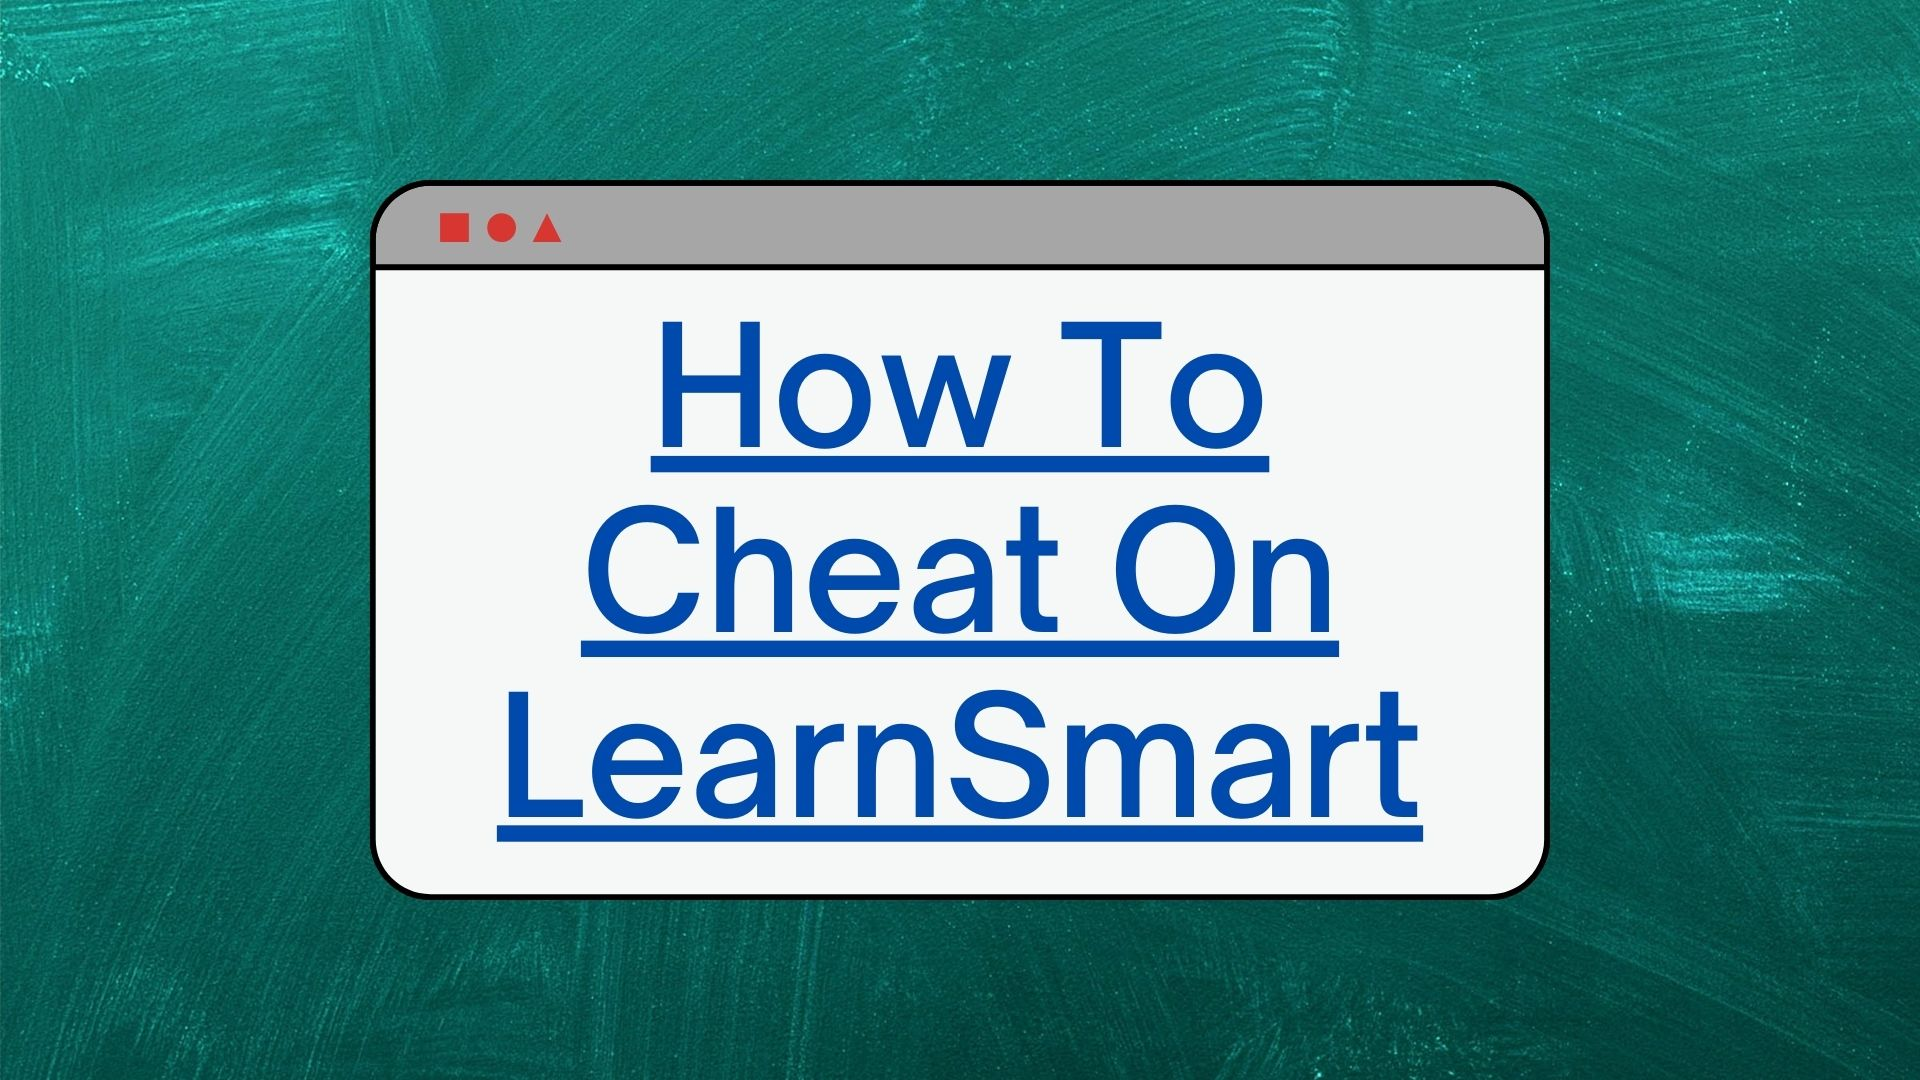 how to cheat on learnsmart